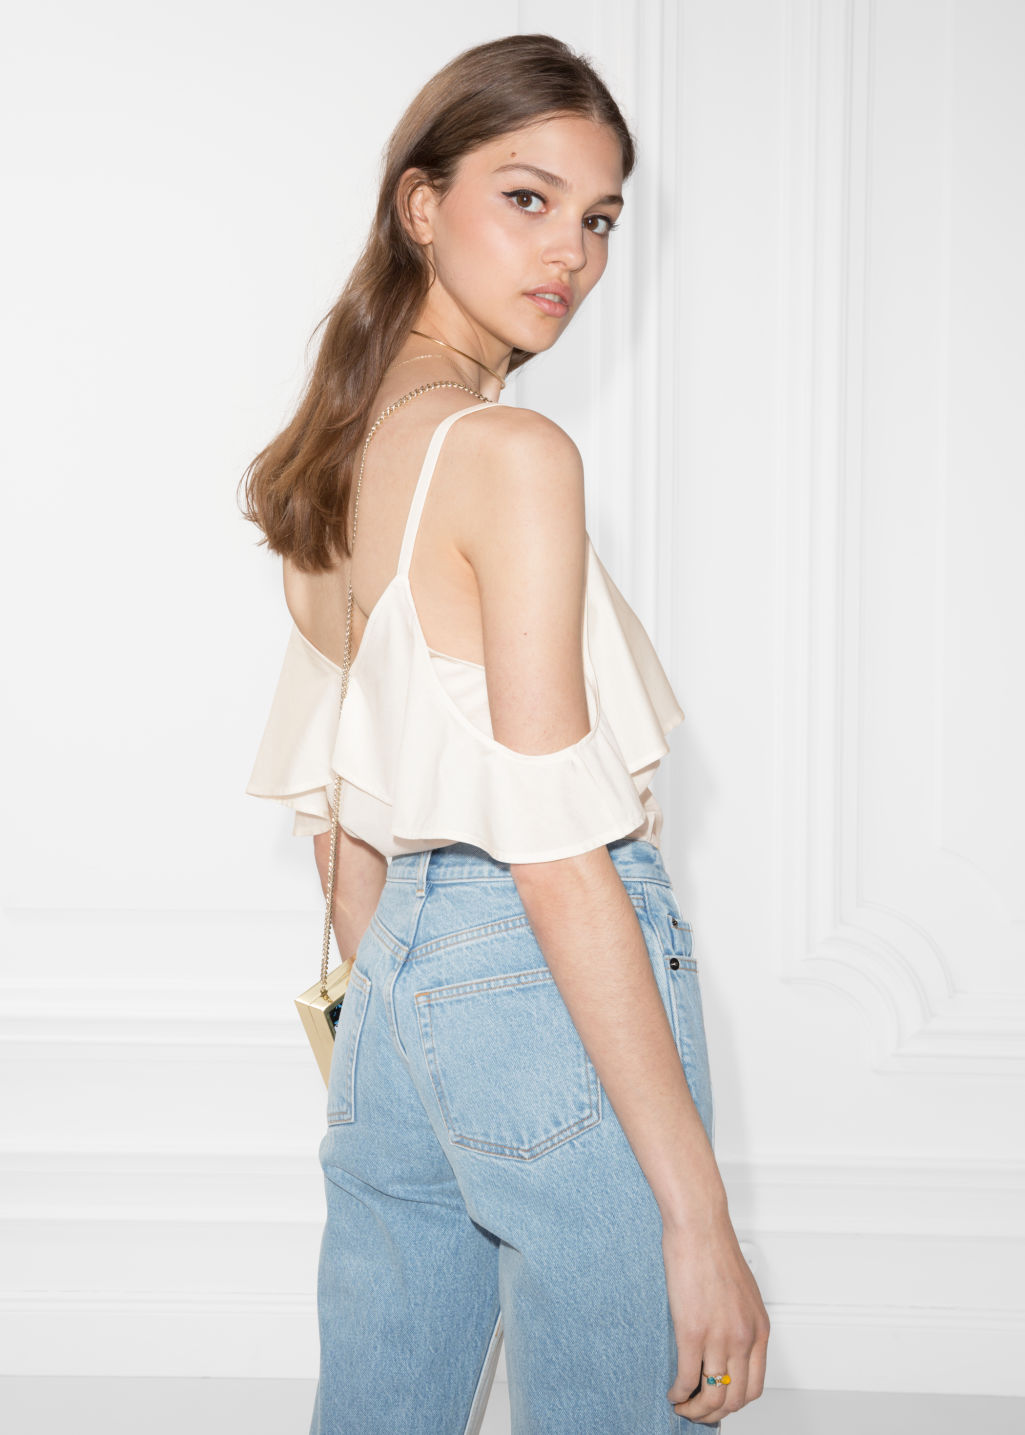 & OTHER STORIES Frill Off-Shoulder Top Aaa Quality bkFRG